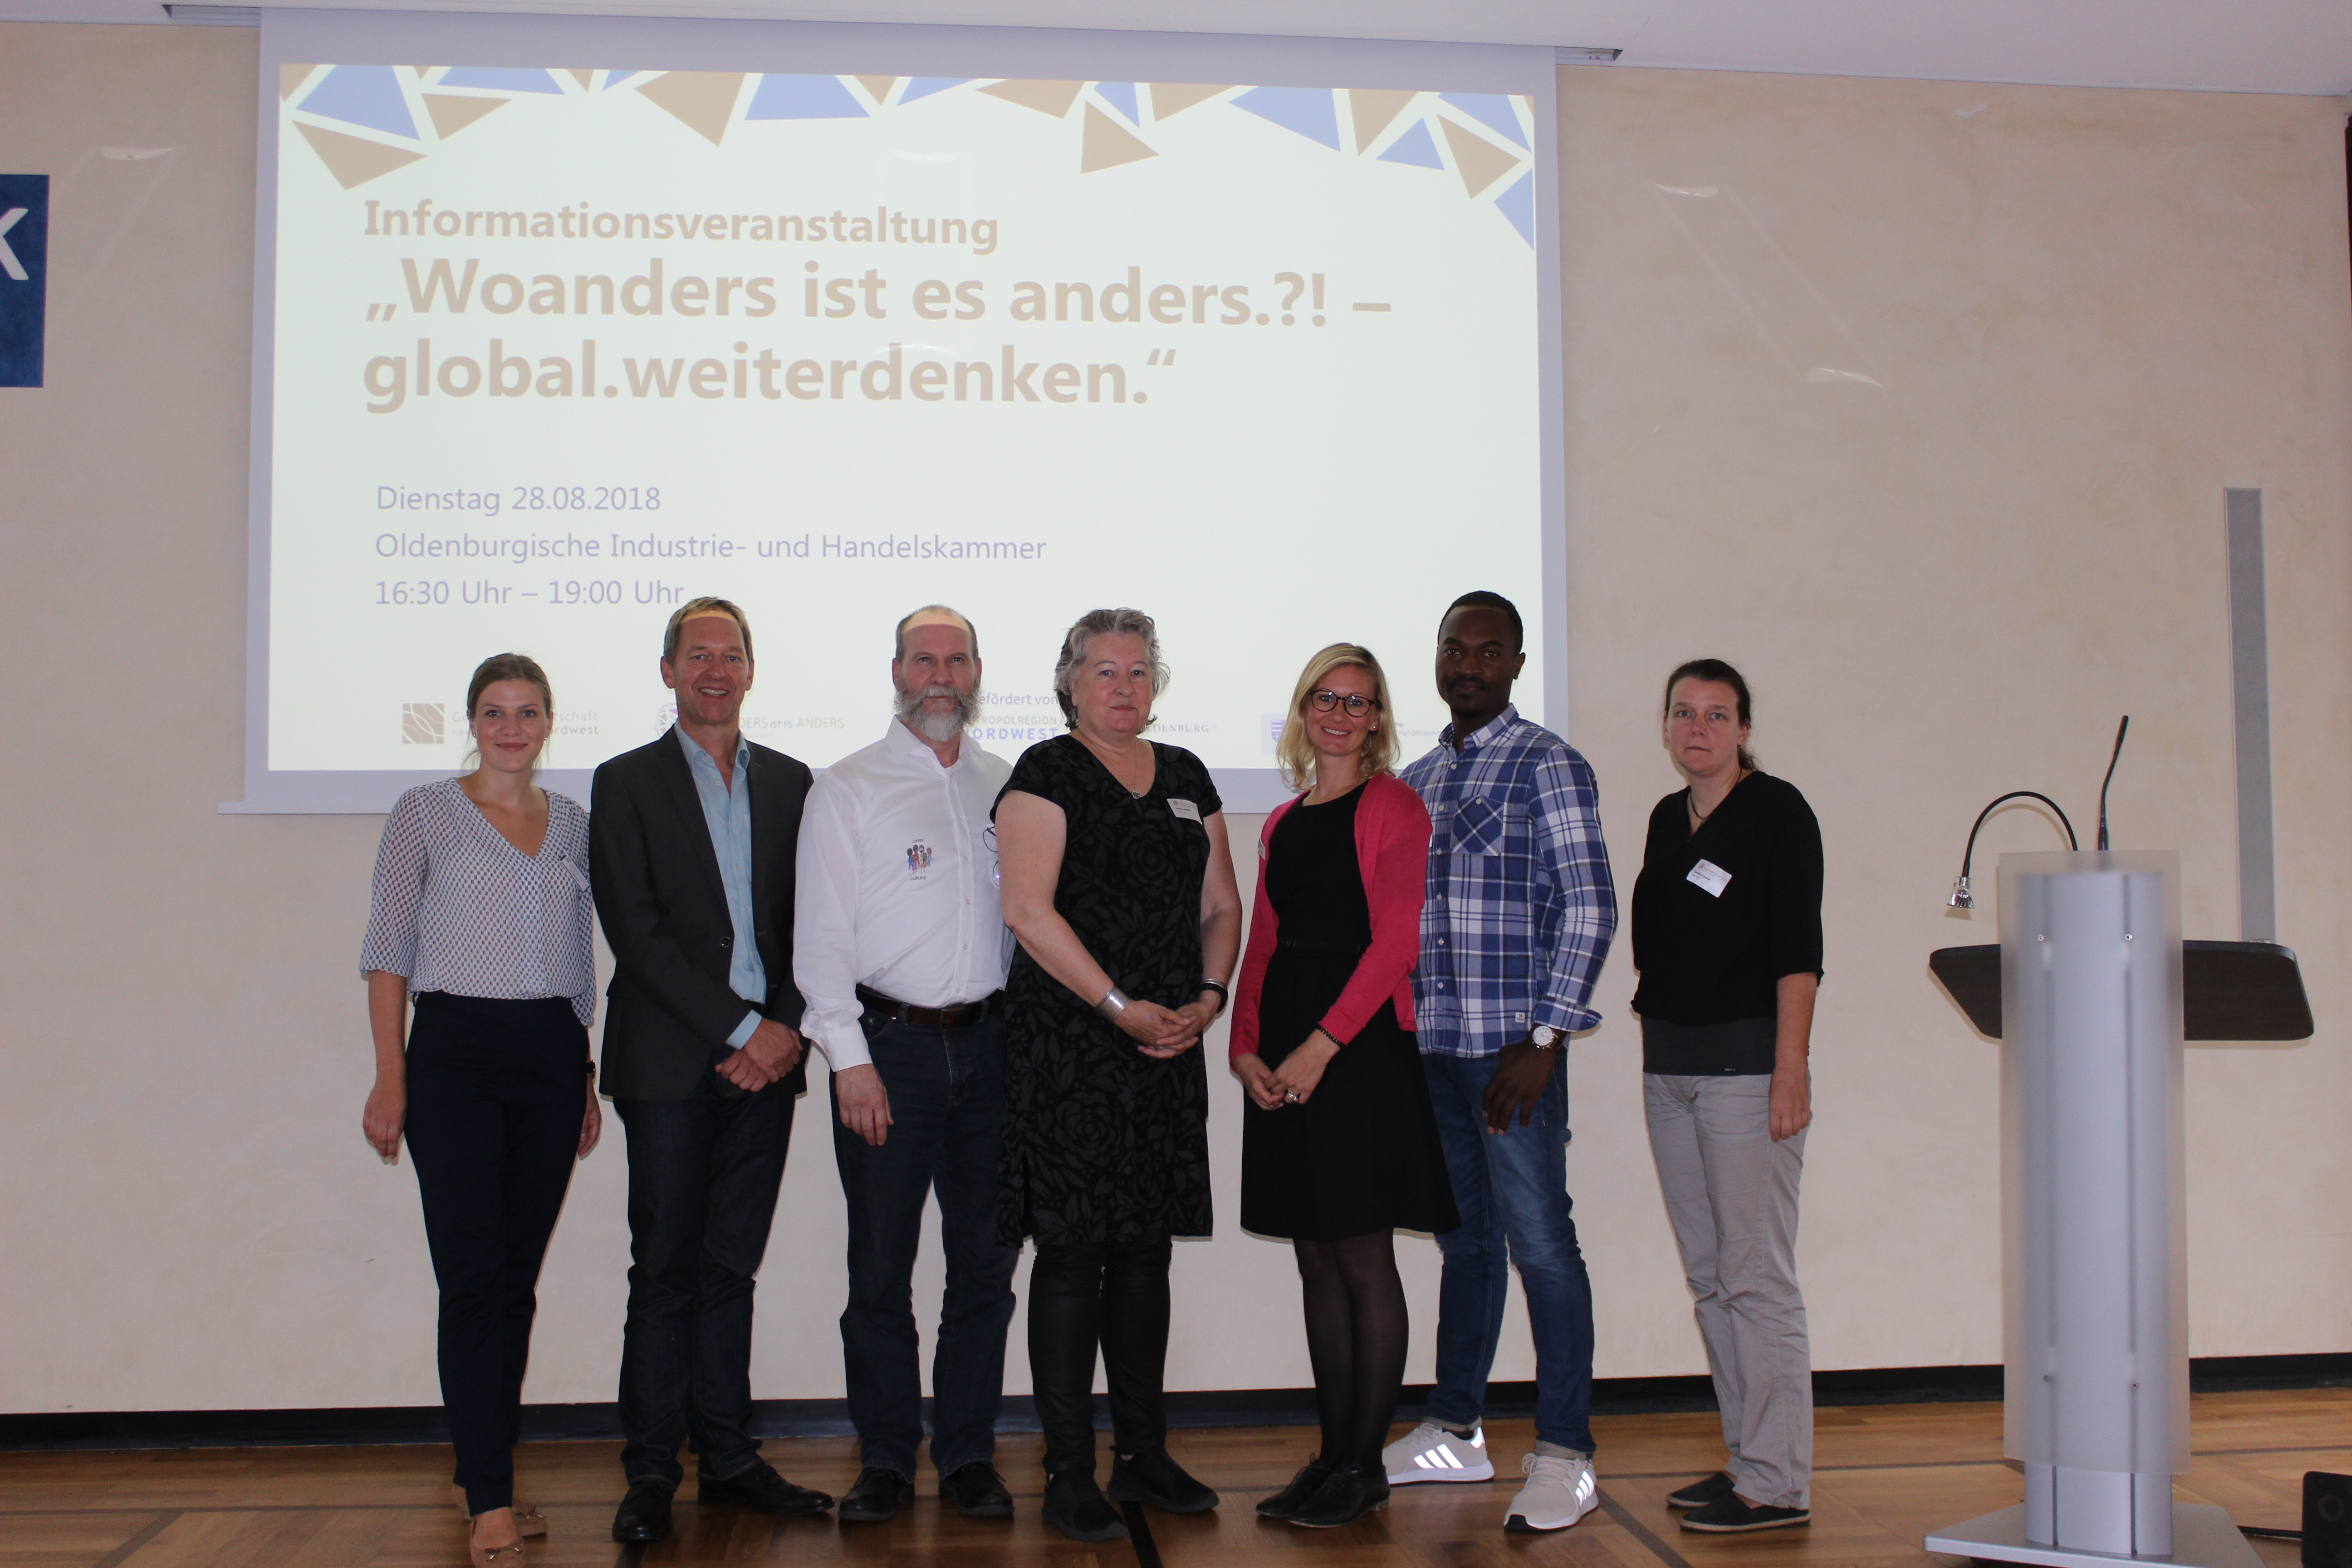 GMSF Informationsveranstaltung Oldenburg 28 08 2018 6